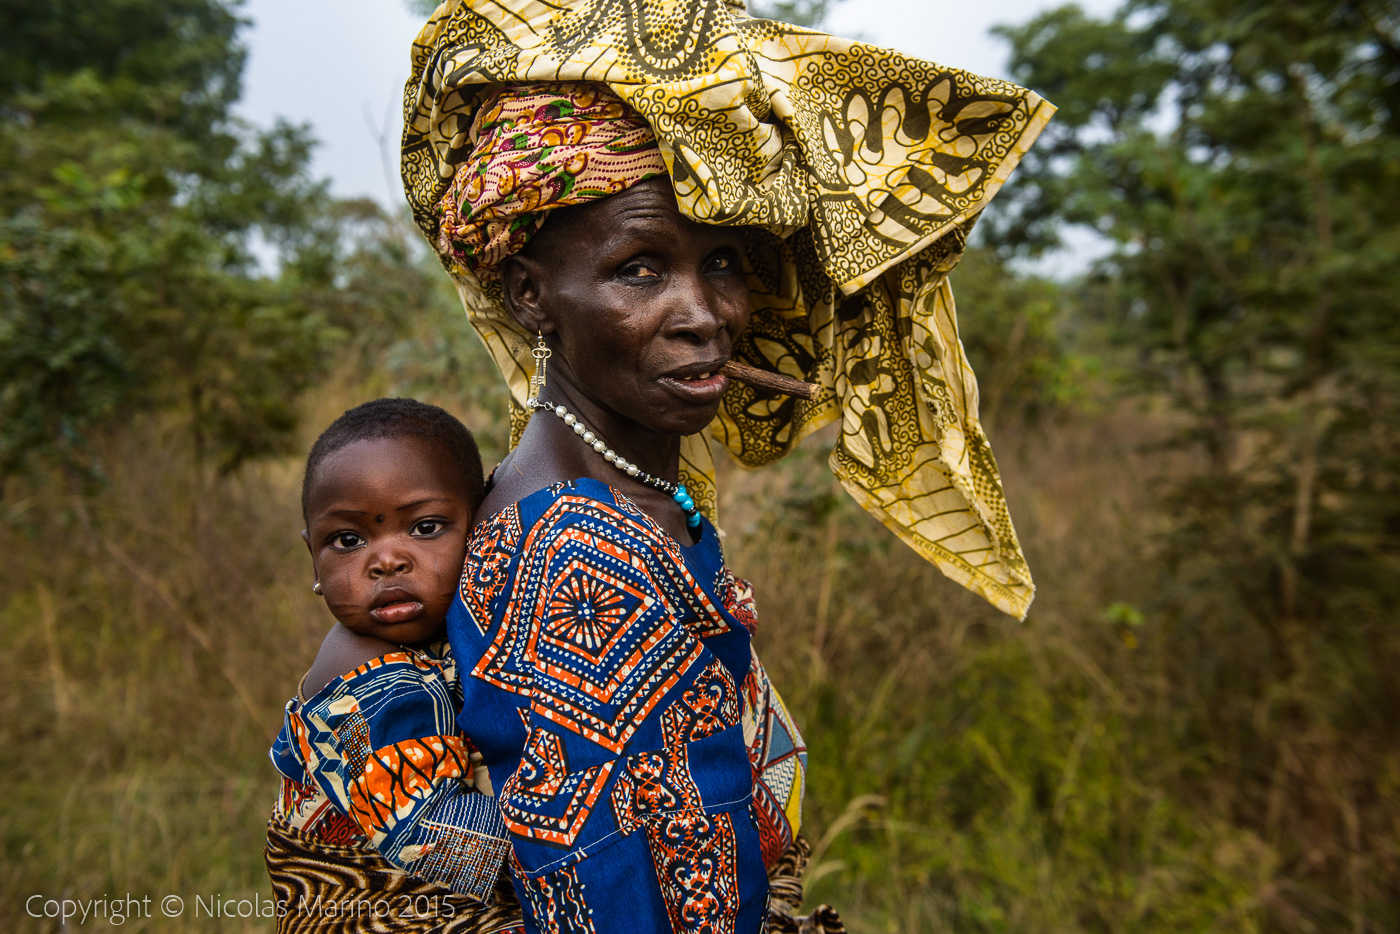 Tribeswomen of northern Benin.